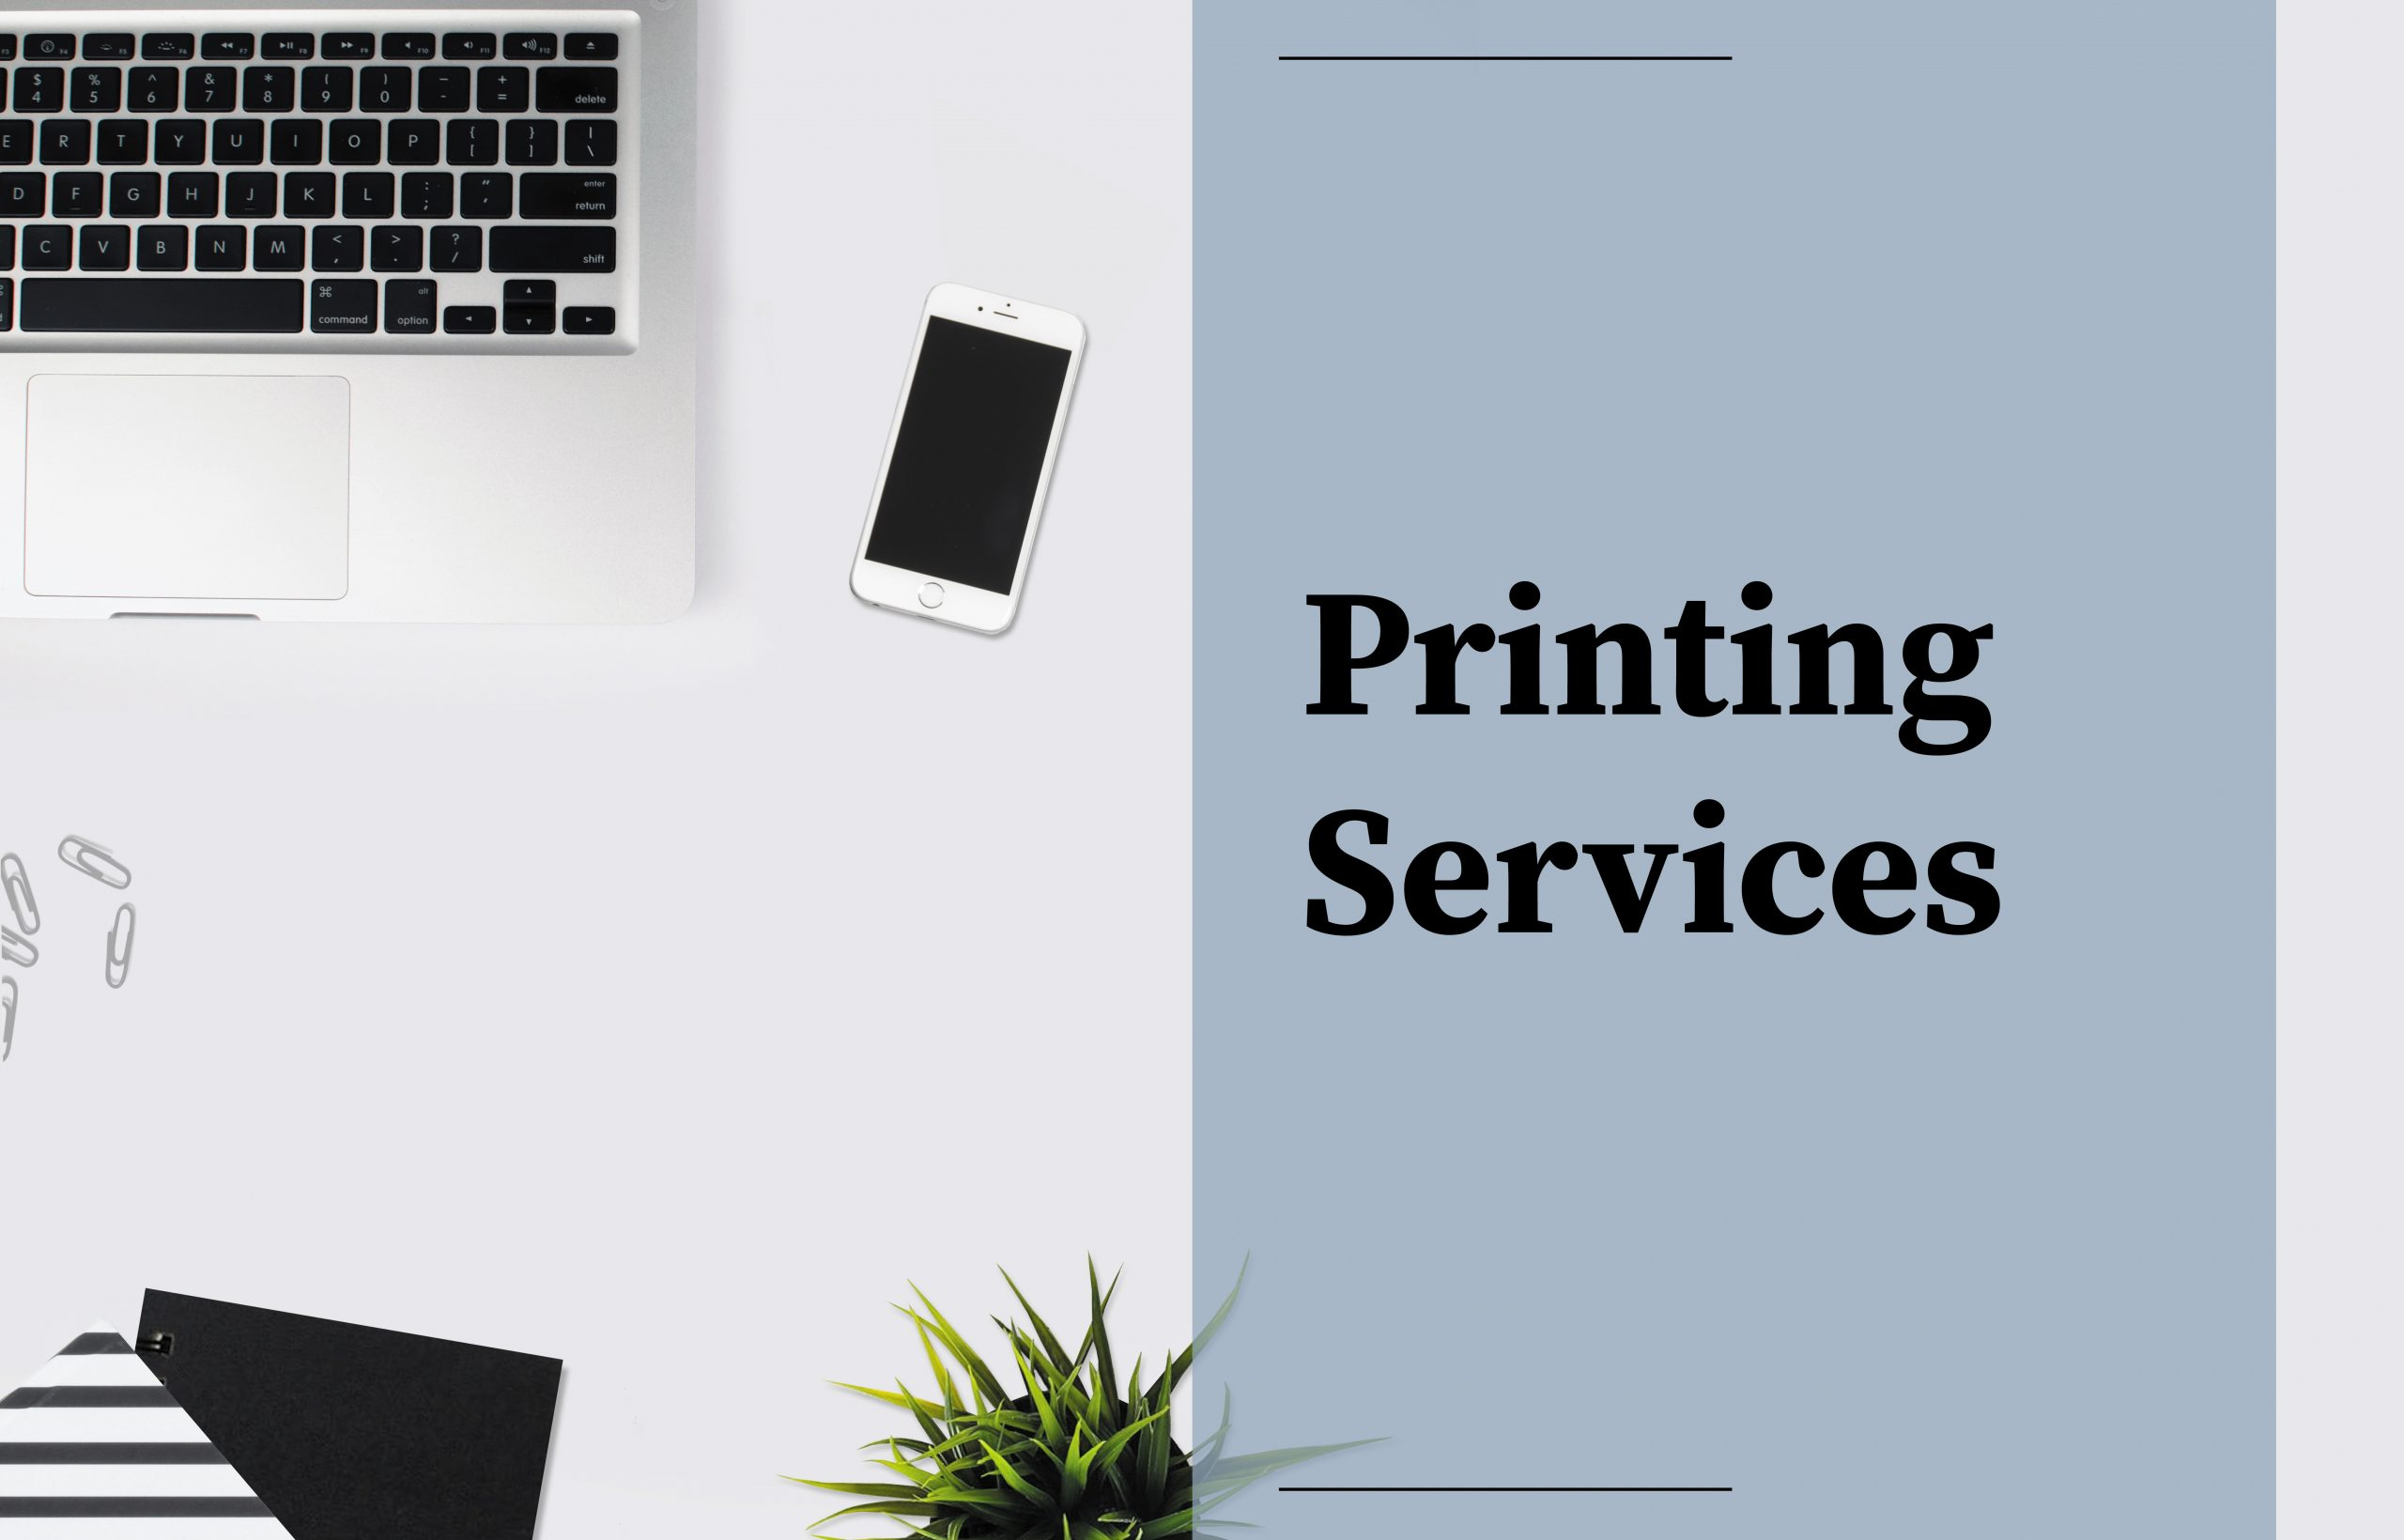 New York Marketings Printing Services